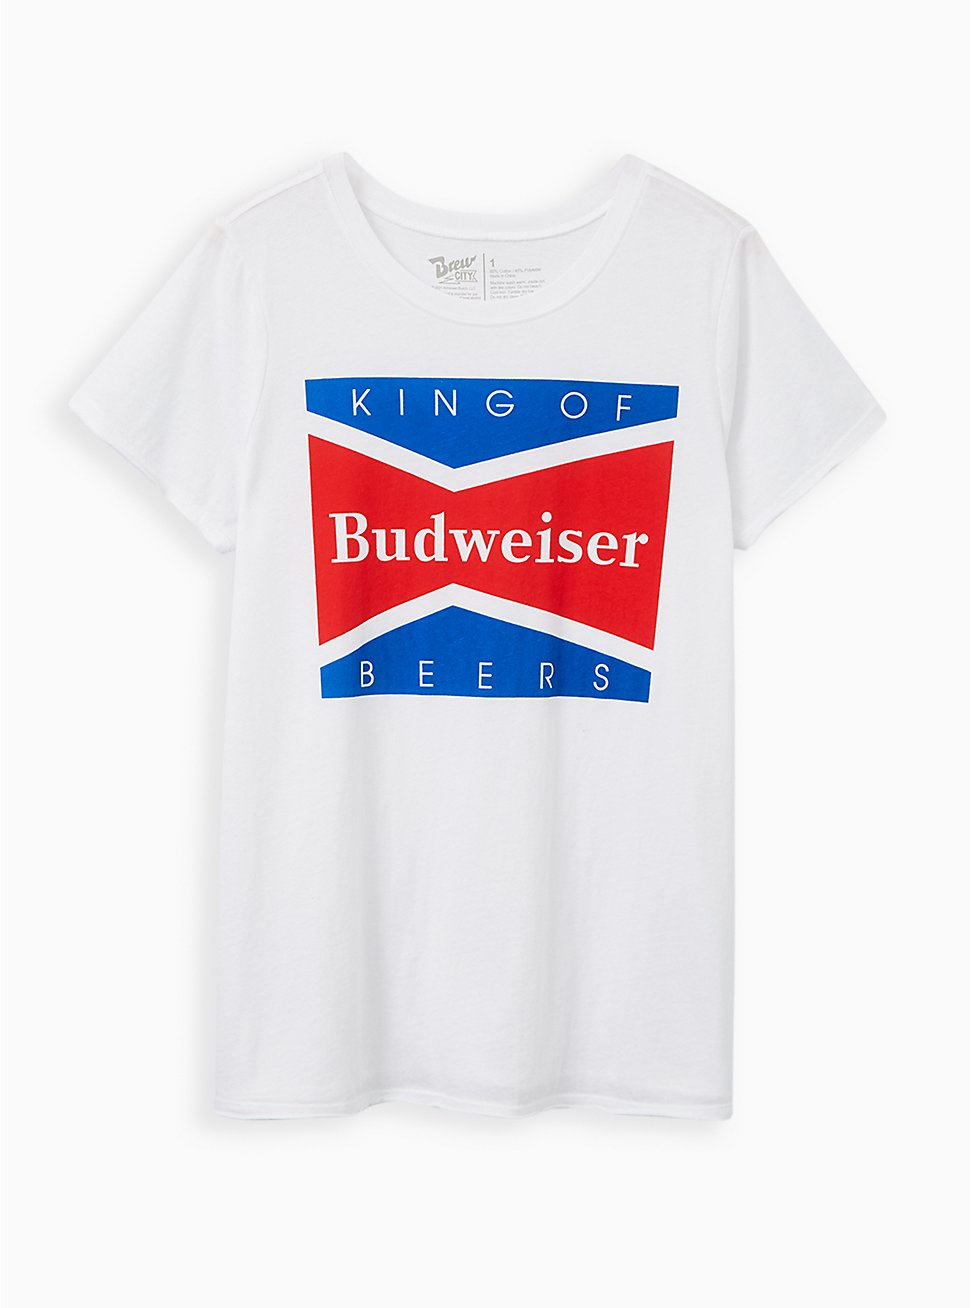 Classic Fit Crew Tee - Budweiser White , WHITE, hi-res